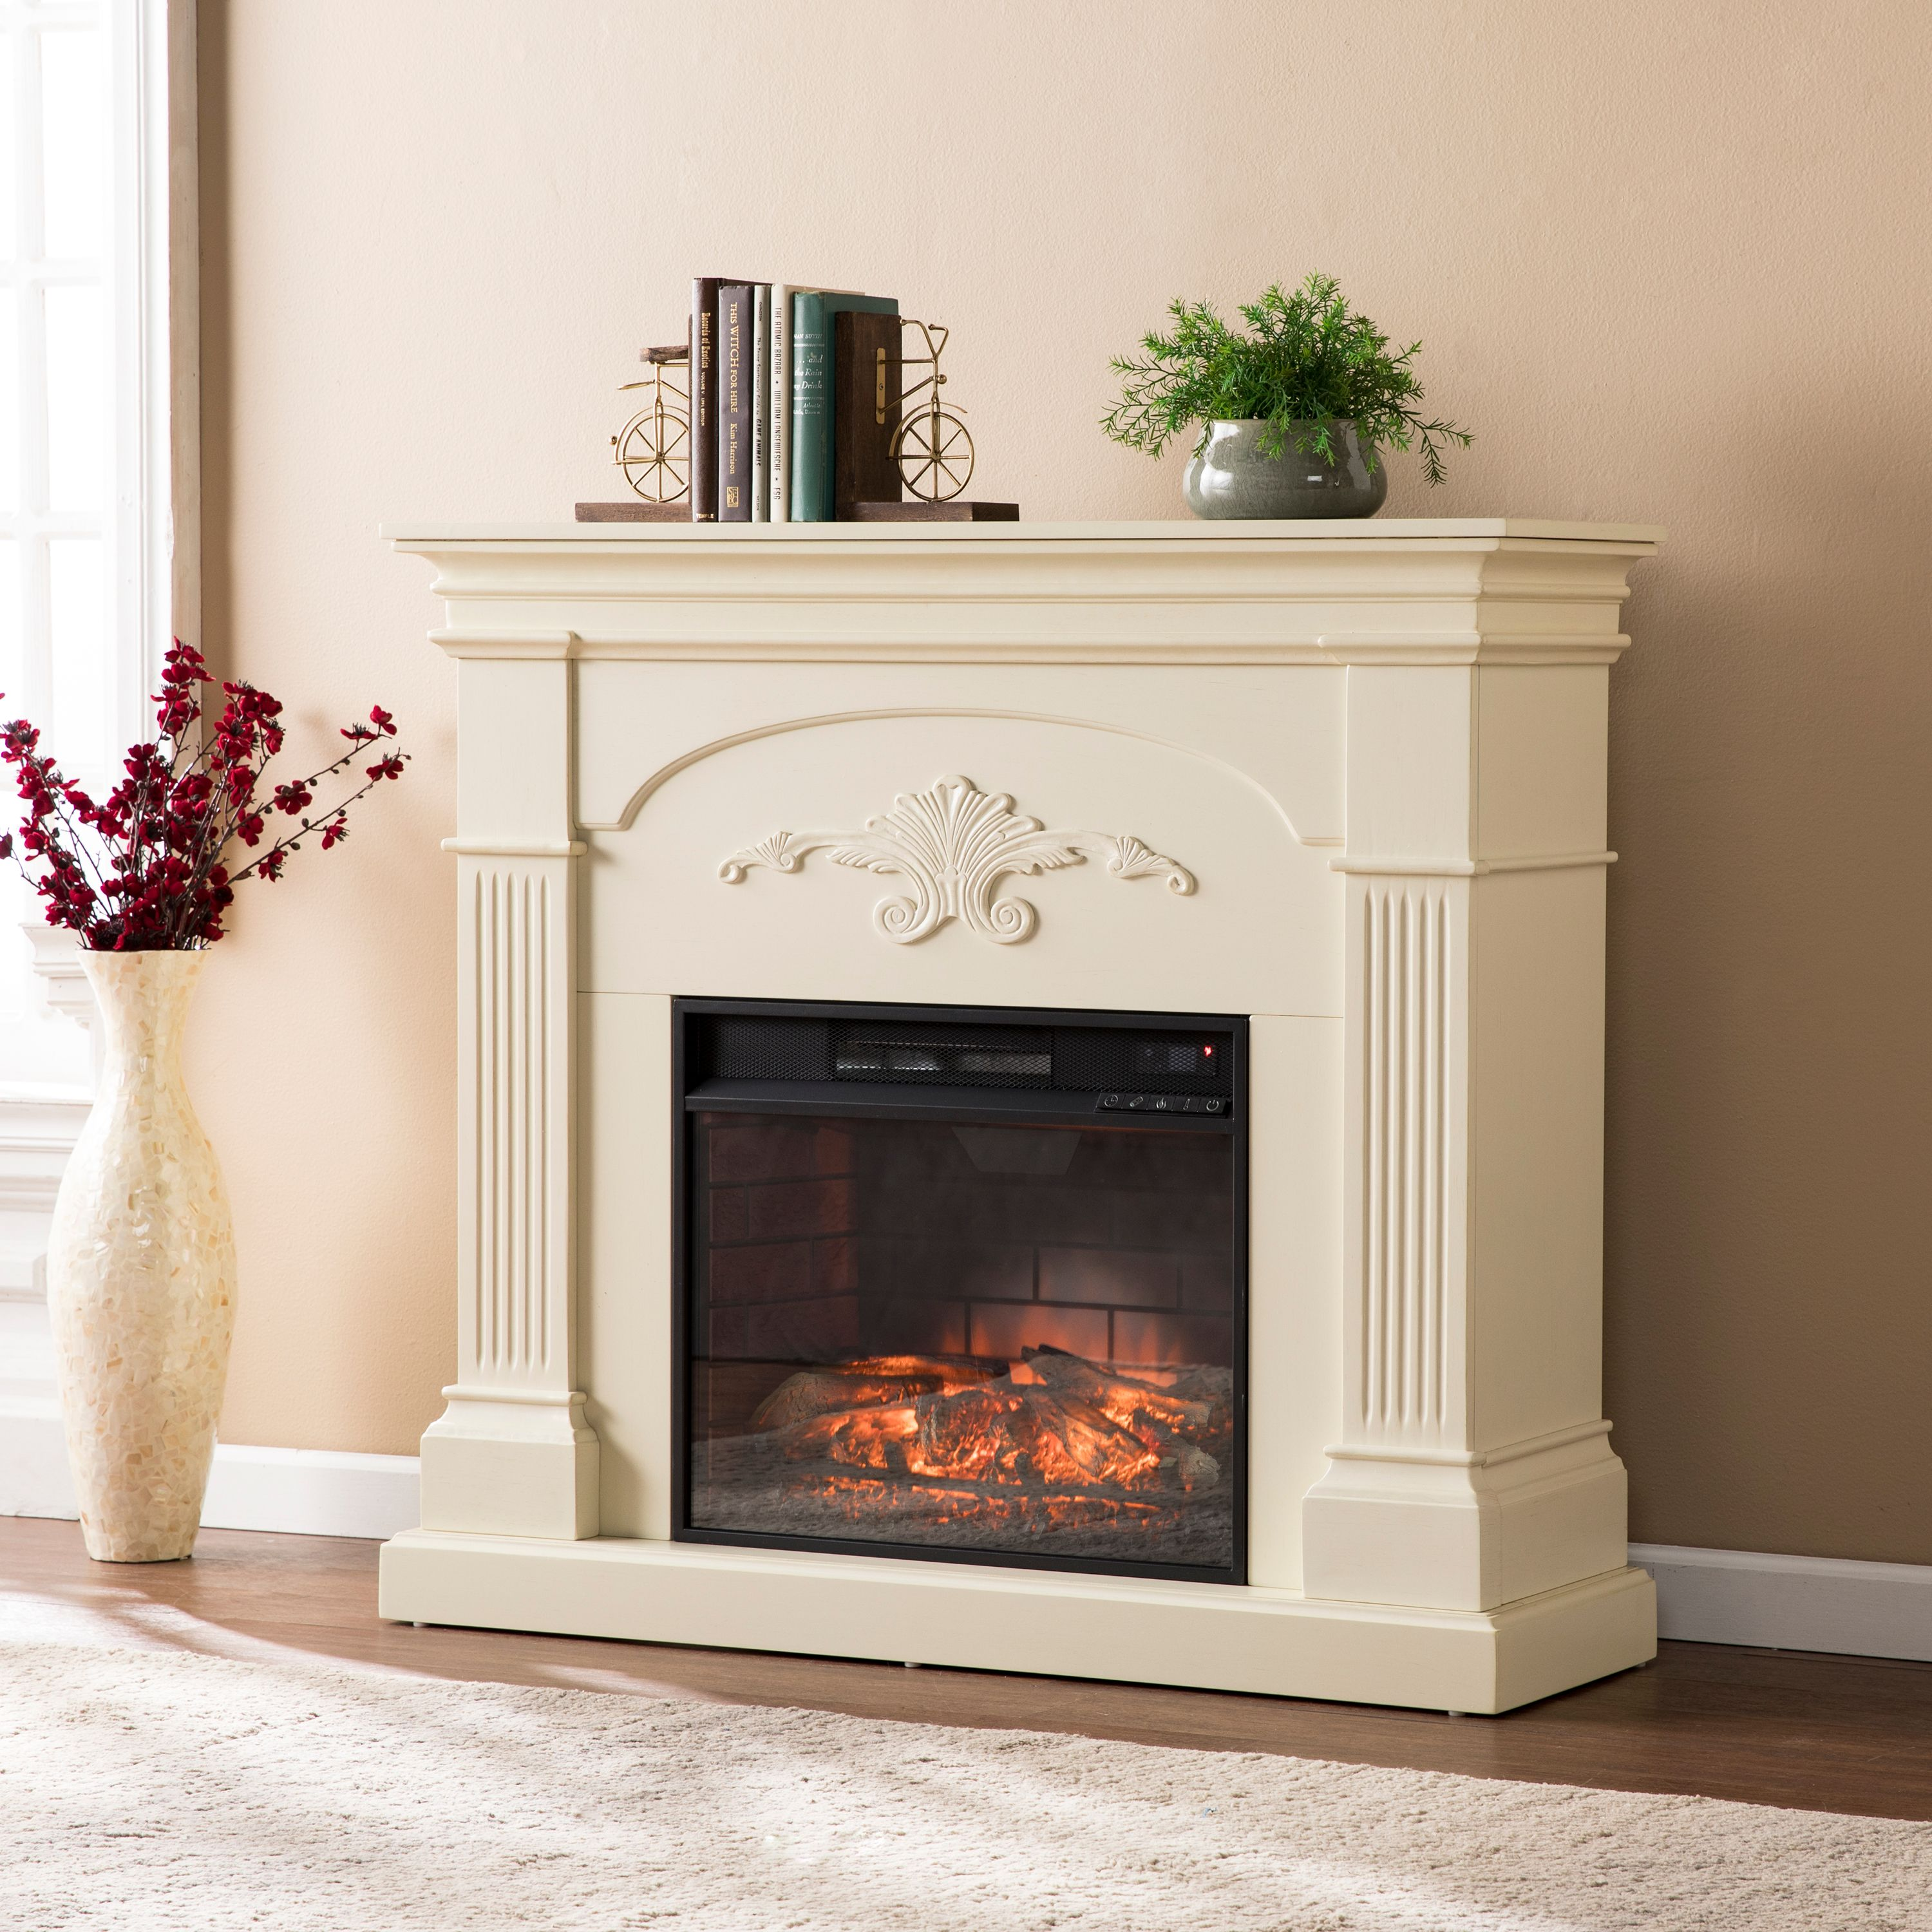 Chamberlain Infrared Electric Fireplace, Ivory